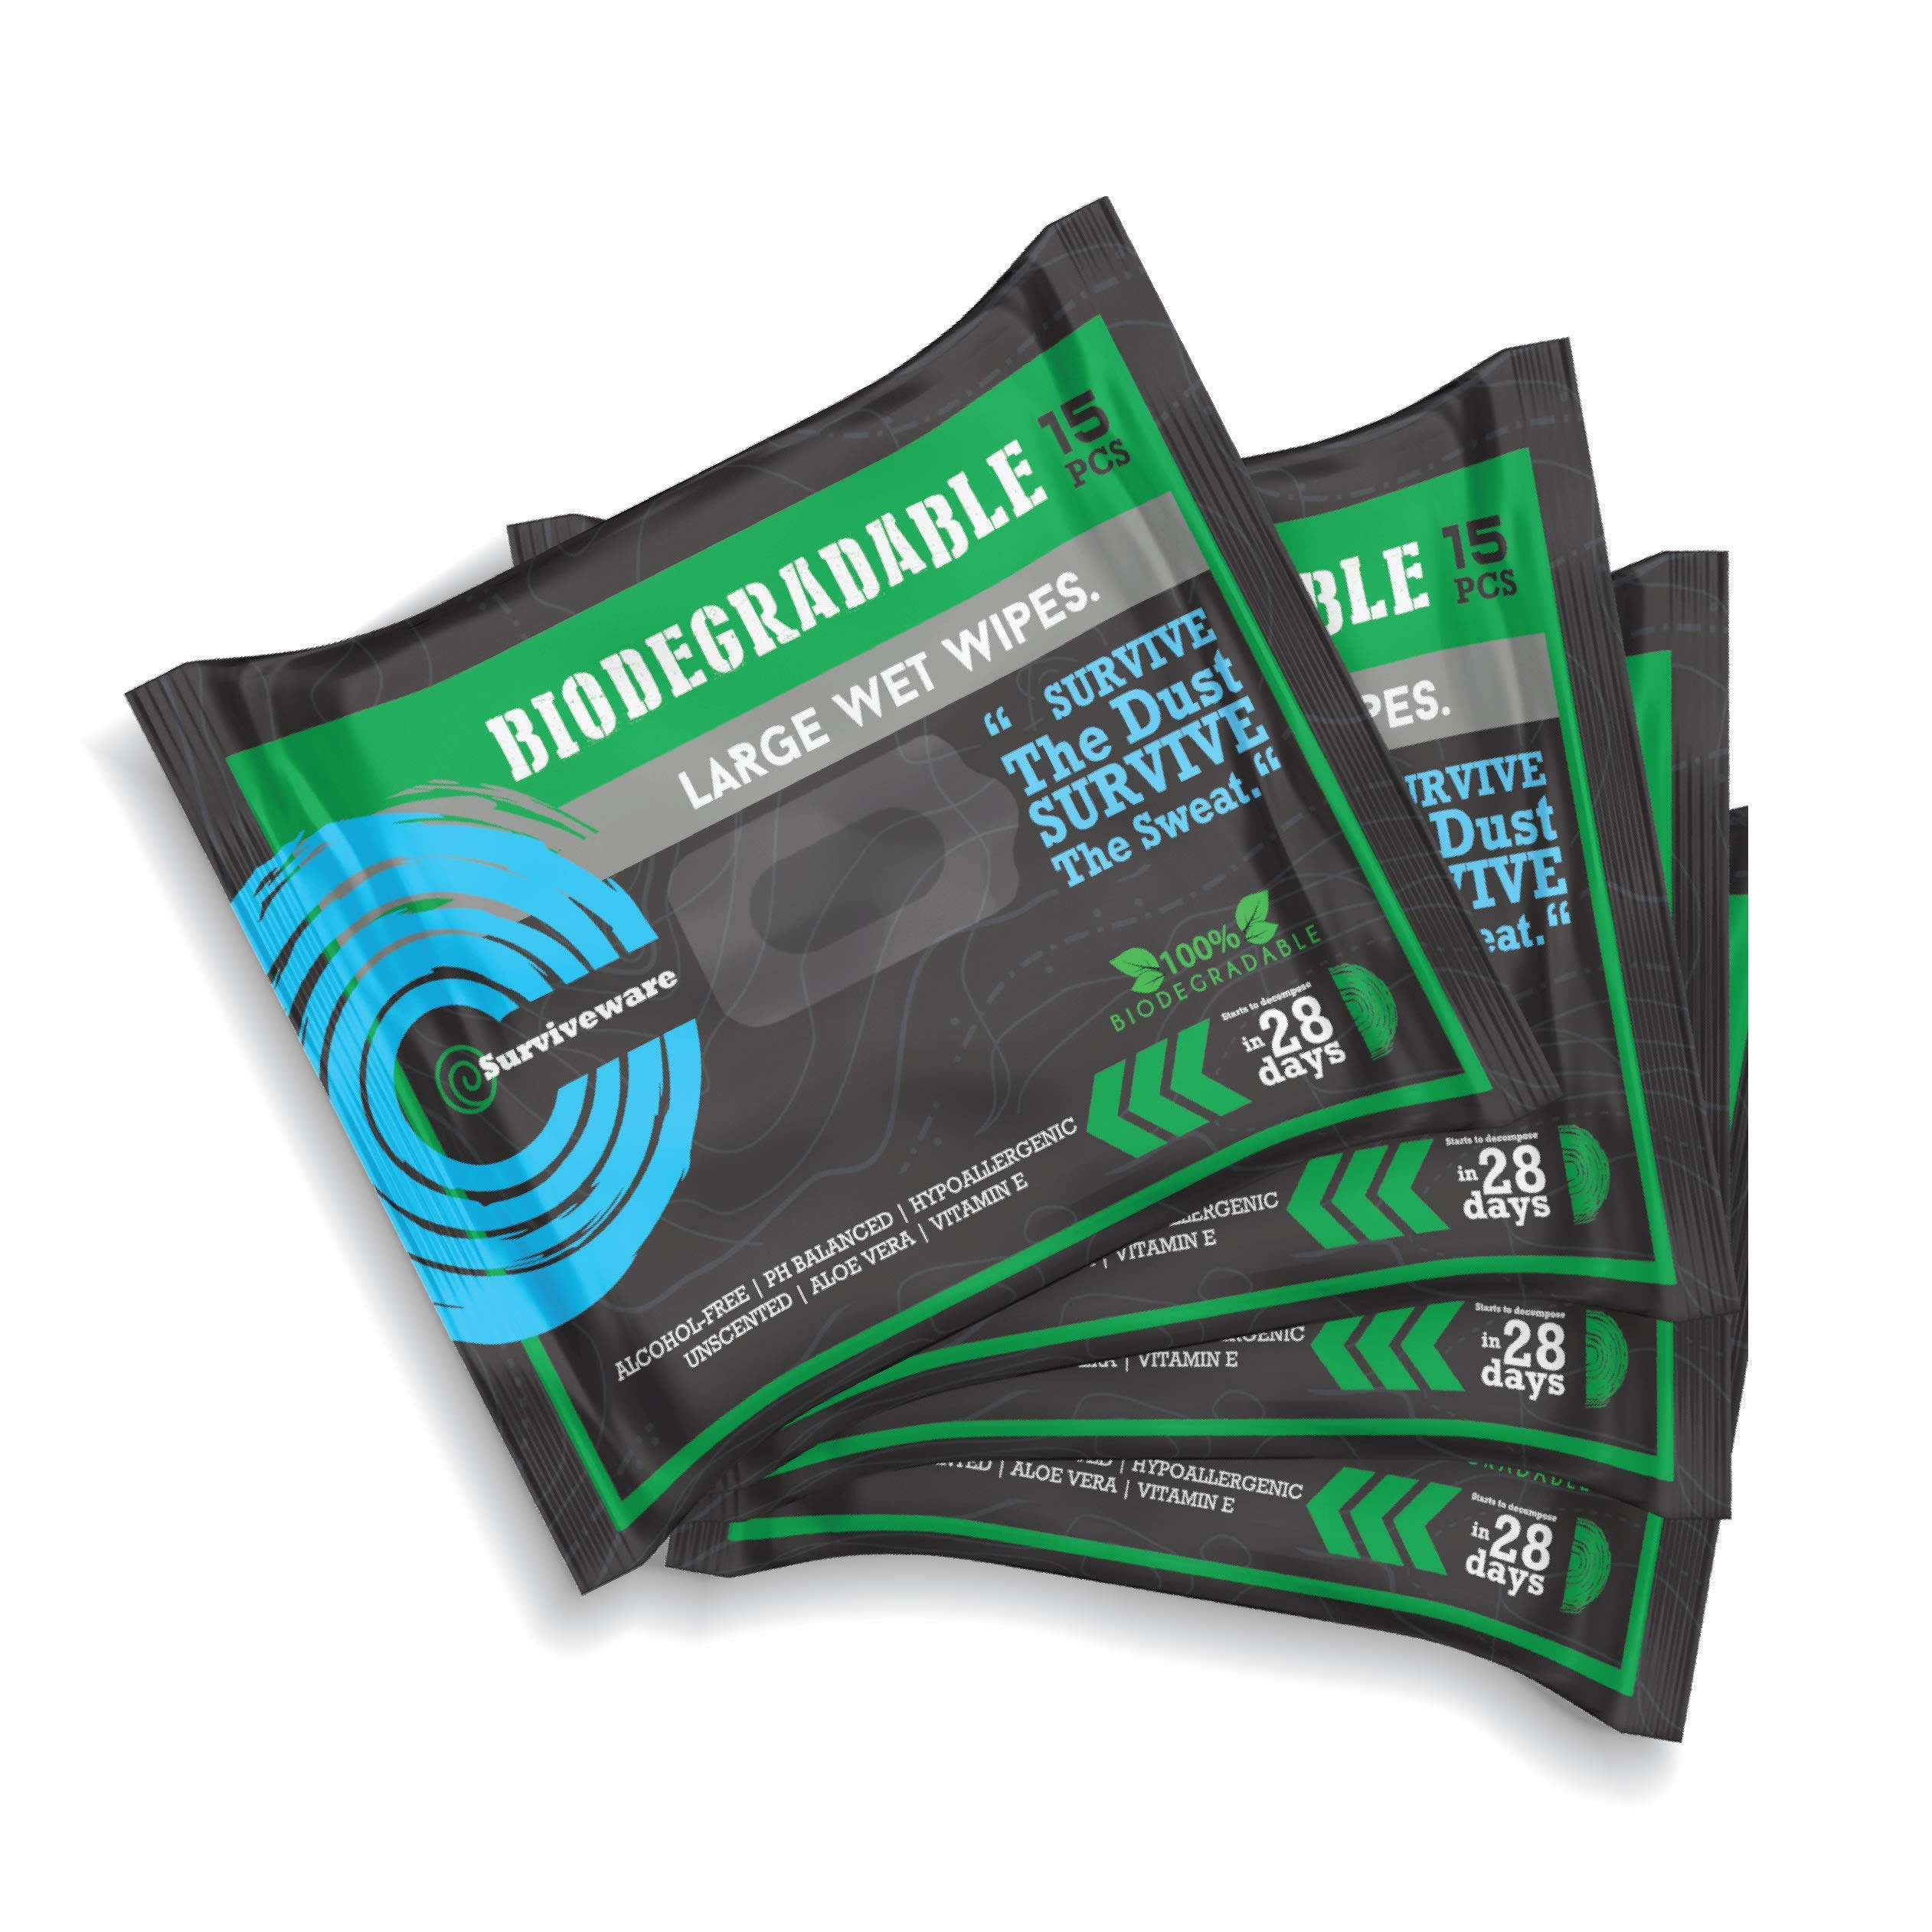 Surviveware Biodegradable Wet Wipes - 4 Travel Packs by Surviveware